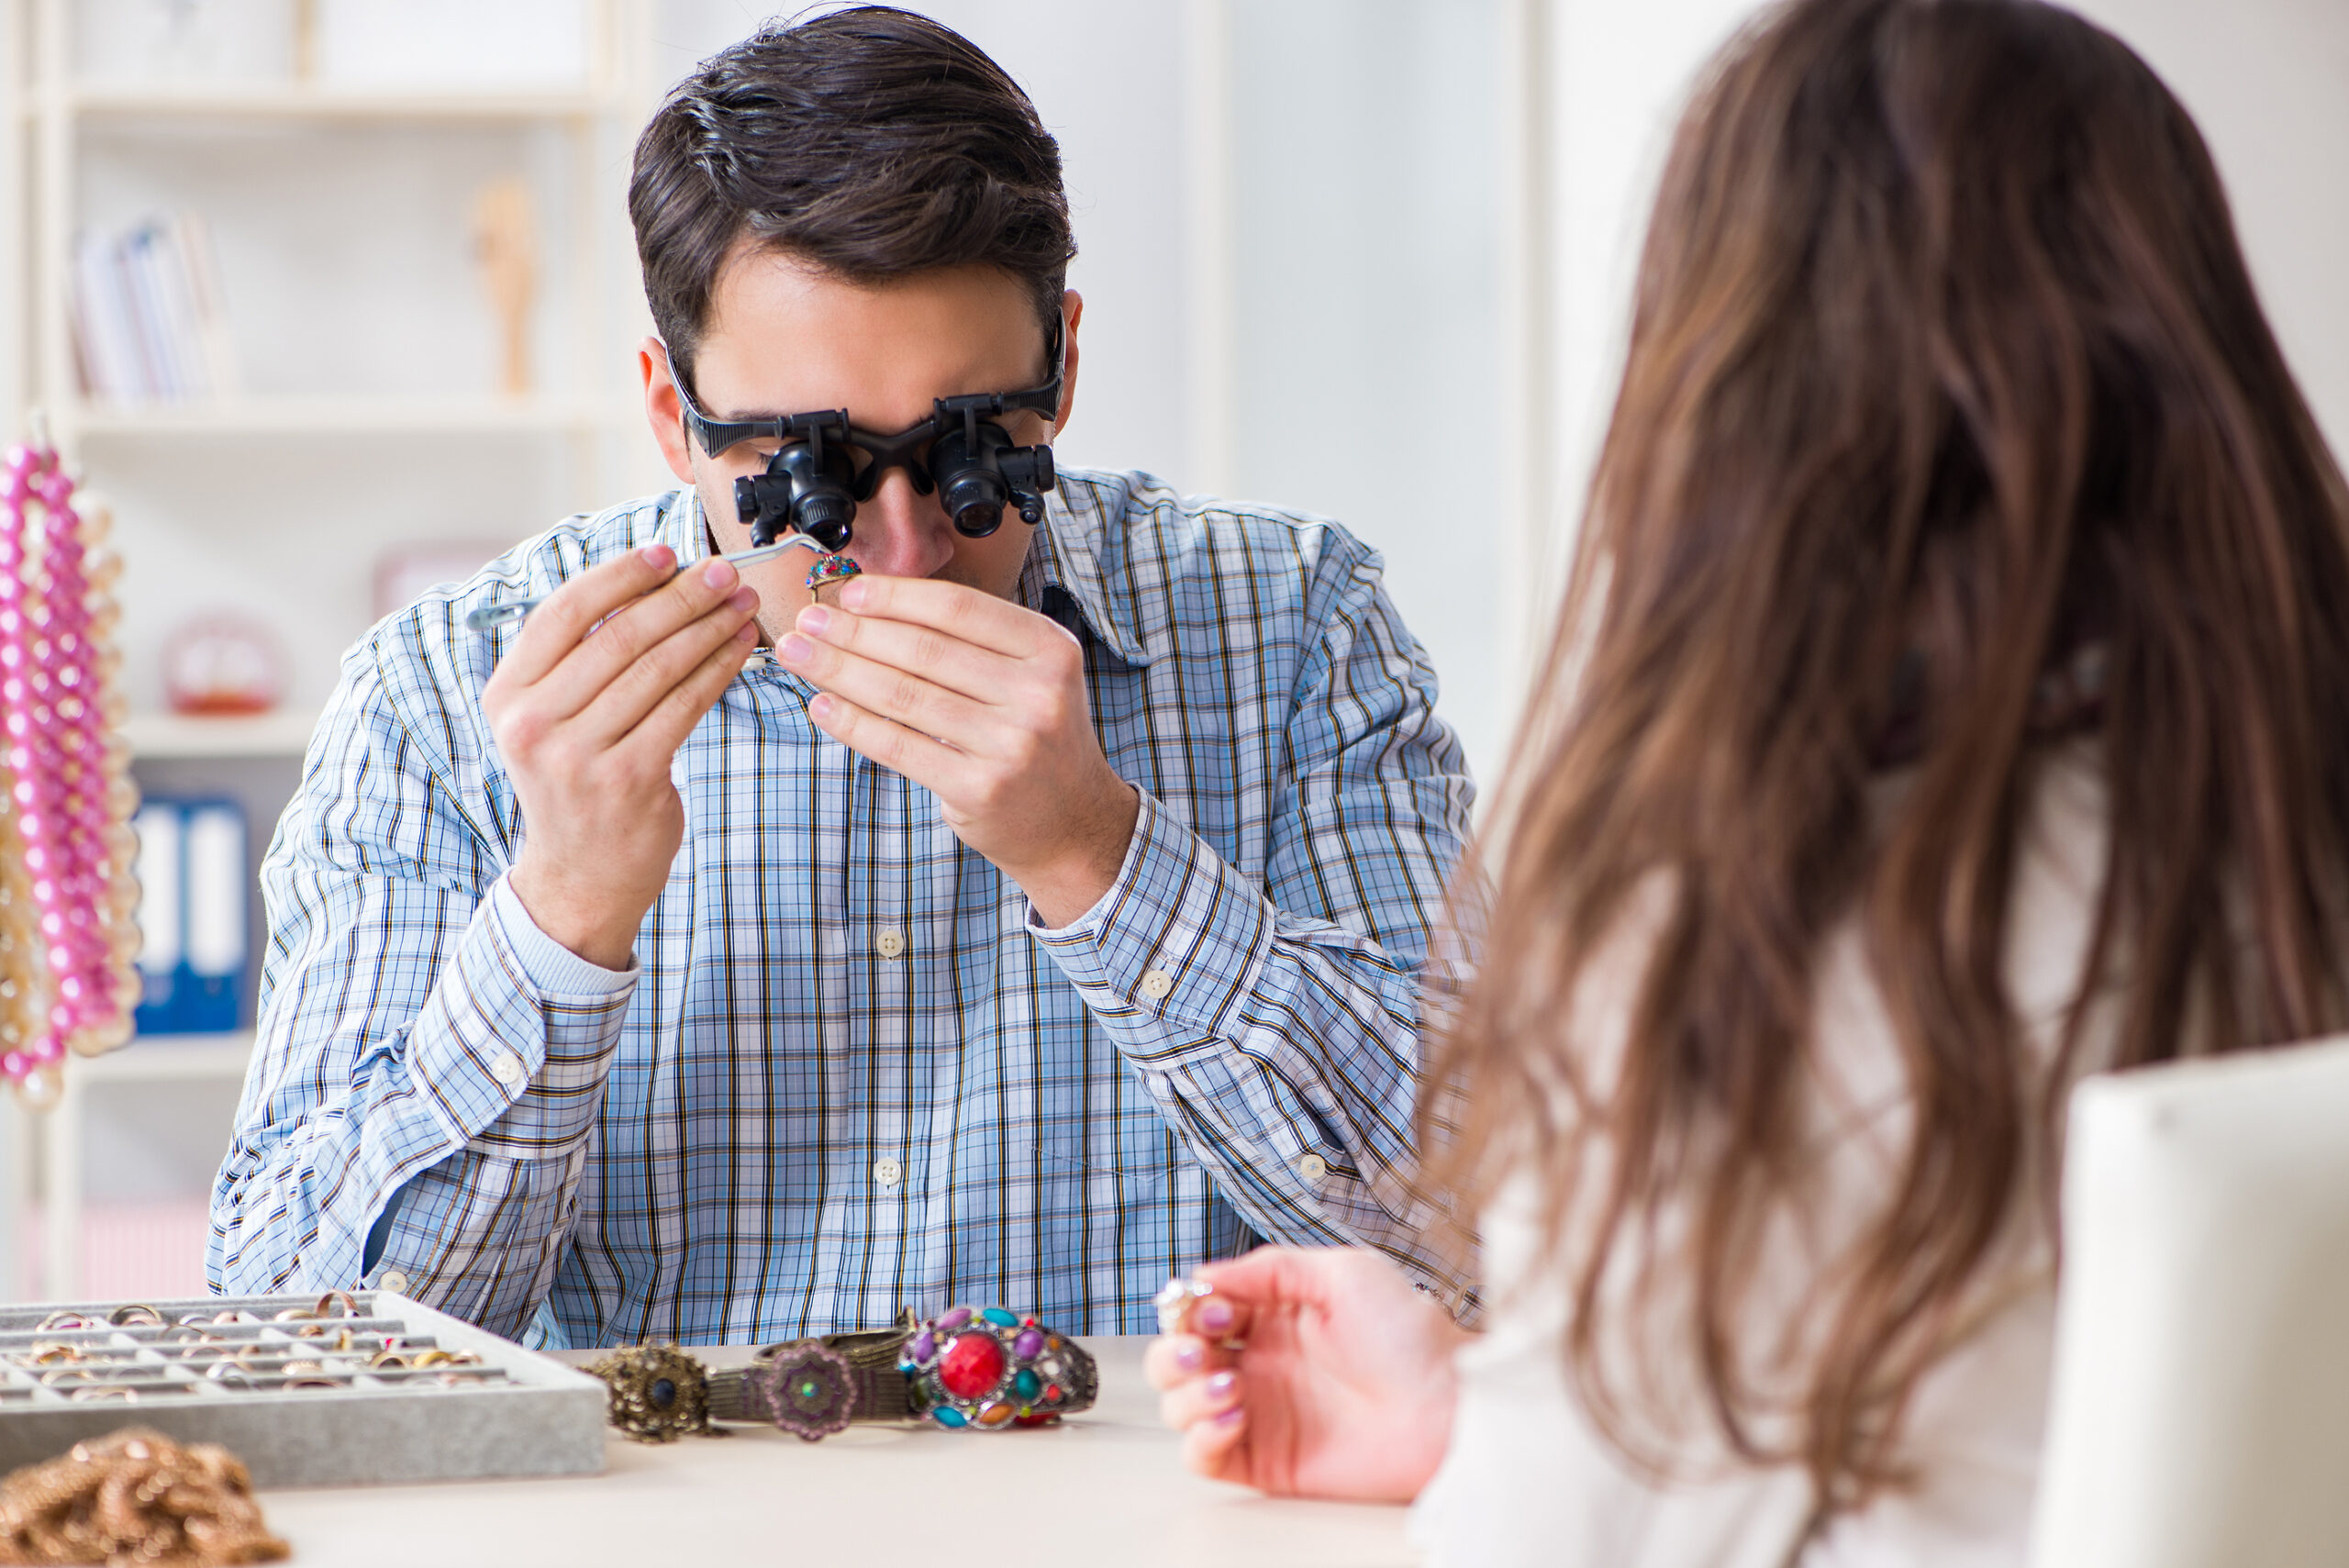 Woman visiting jeweler for jewelry evaluation